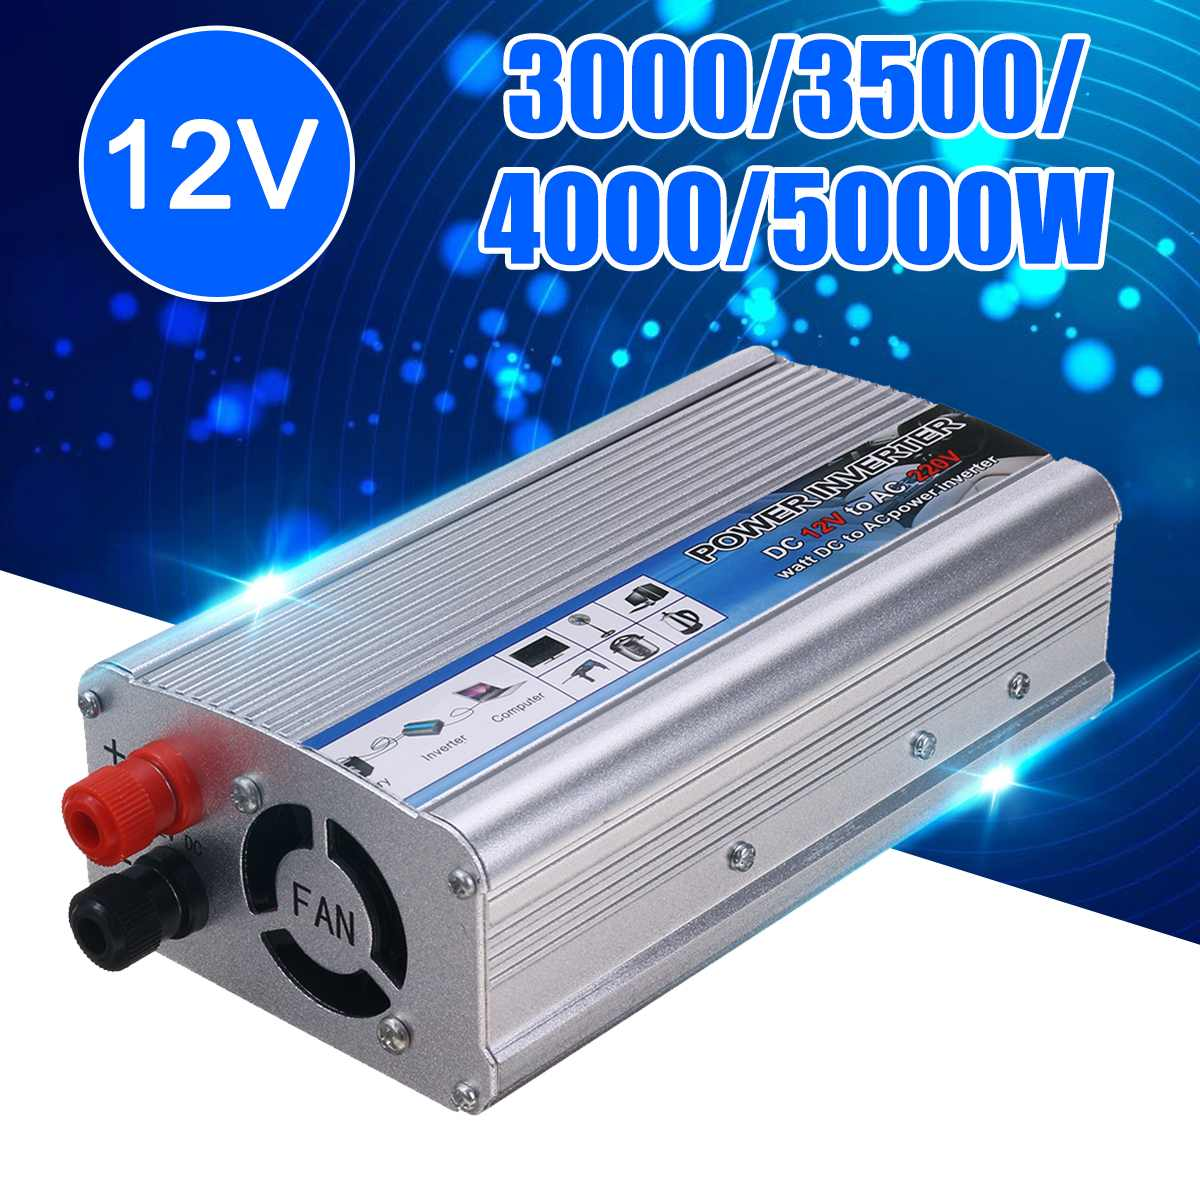 Adapter Inverter Charger Wave Car-Power 5000W-3000 Portable 220V Sine To Watt 12V DC